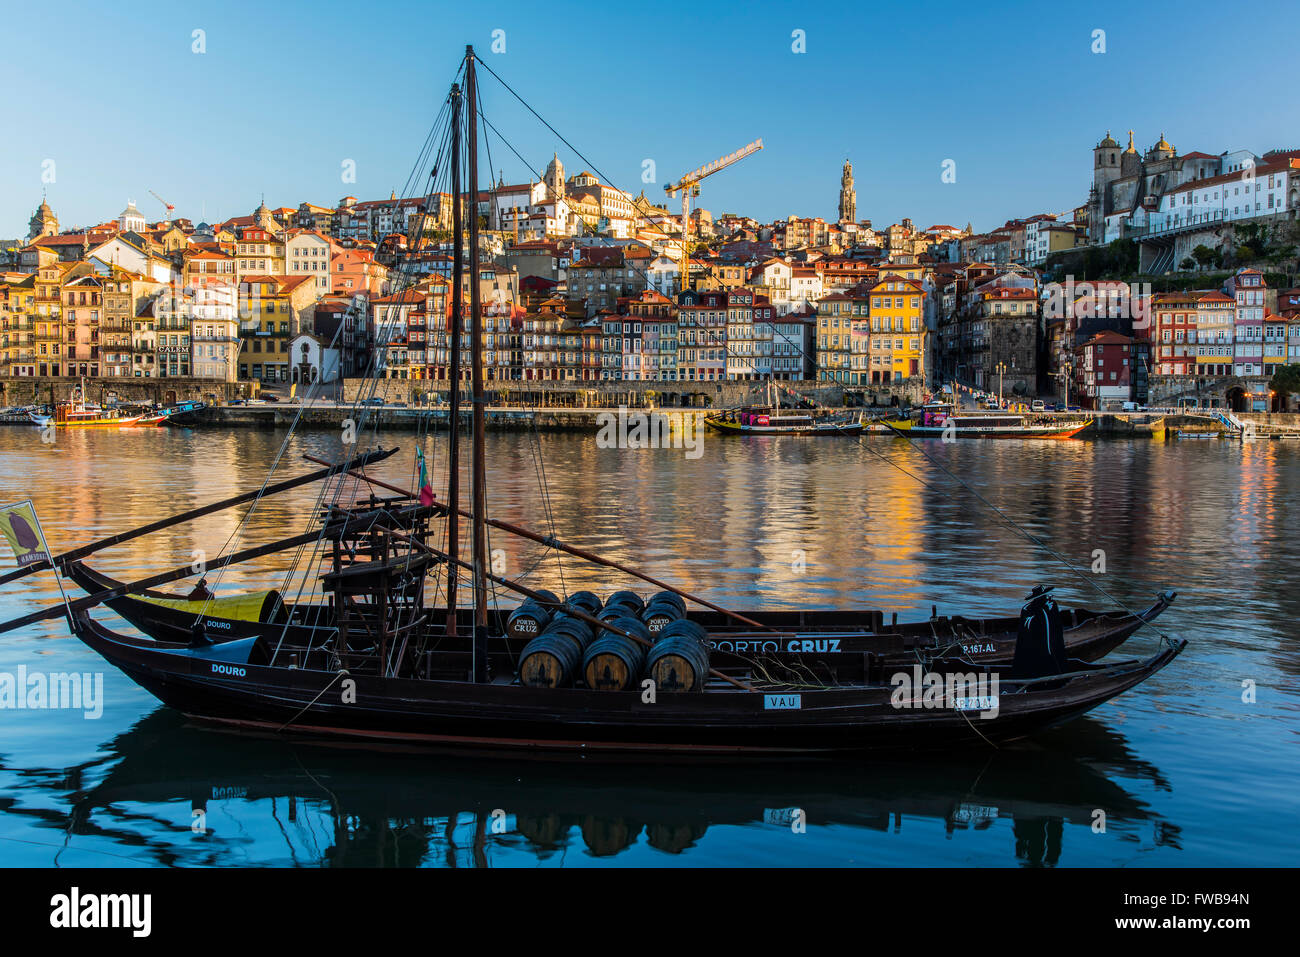 Traditional Rabelo boat designed to carry wine down Douro river with city skyline behind, Porto, Portugal Stock Photo